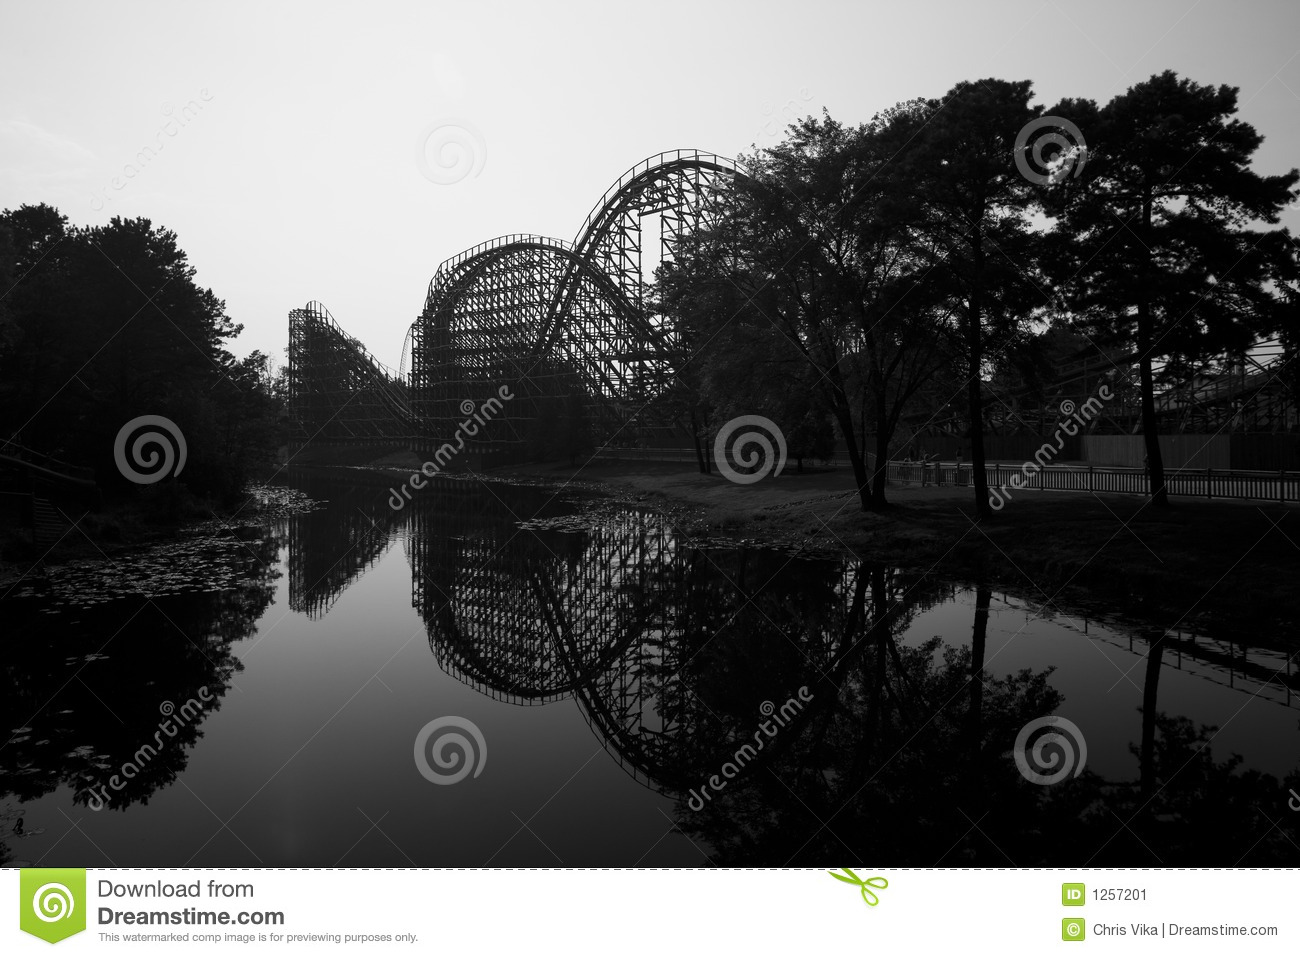 Wooden rollercoaster, trees and a lake